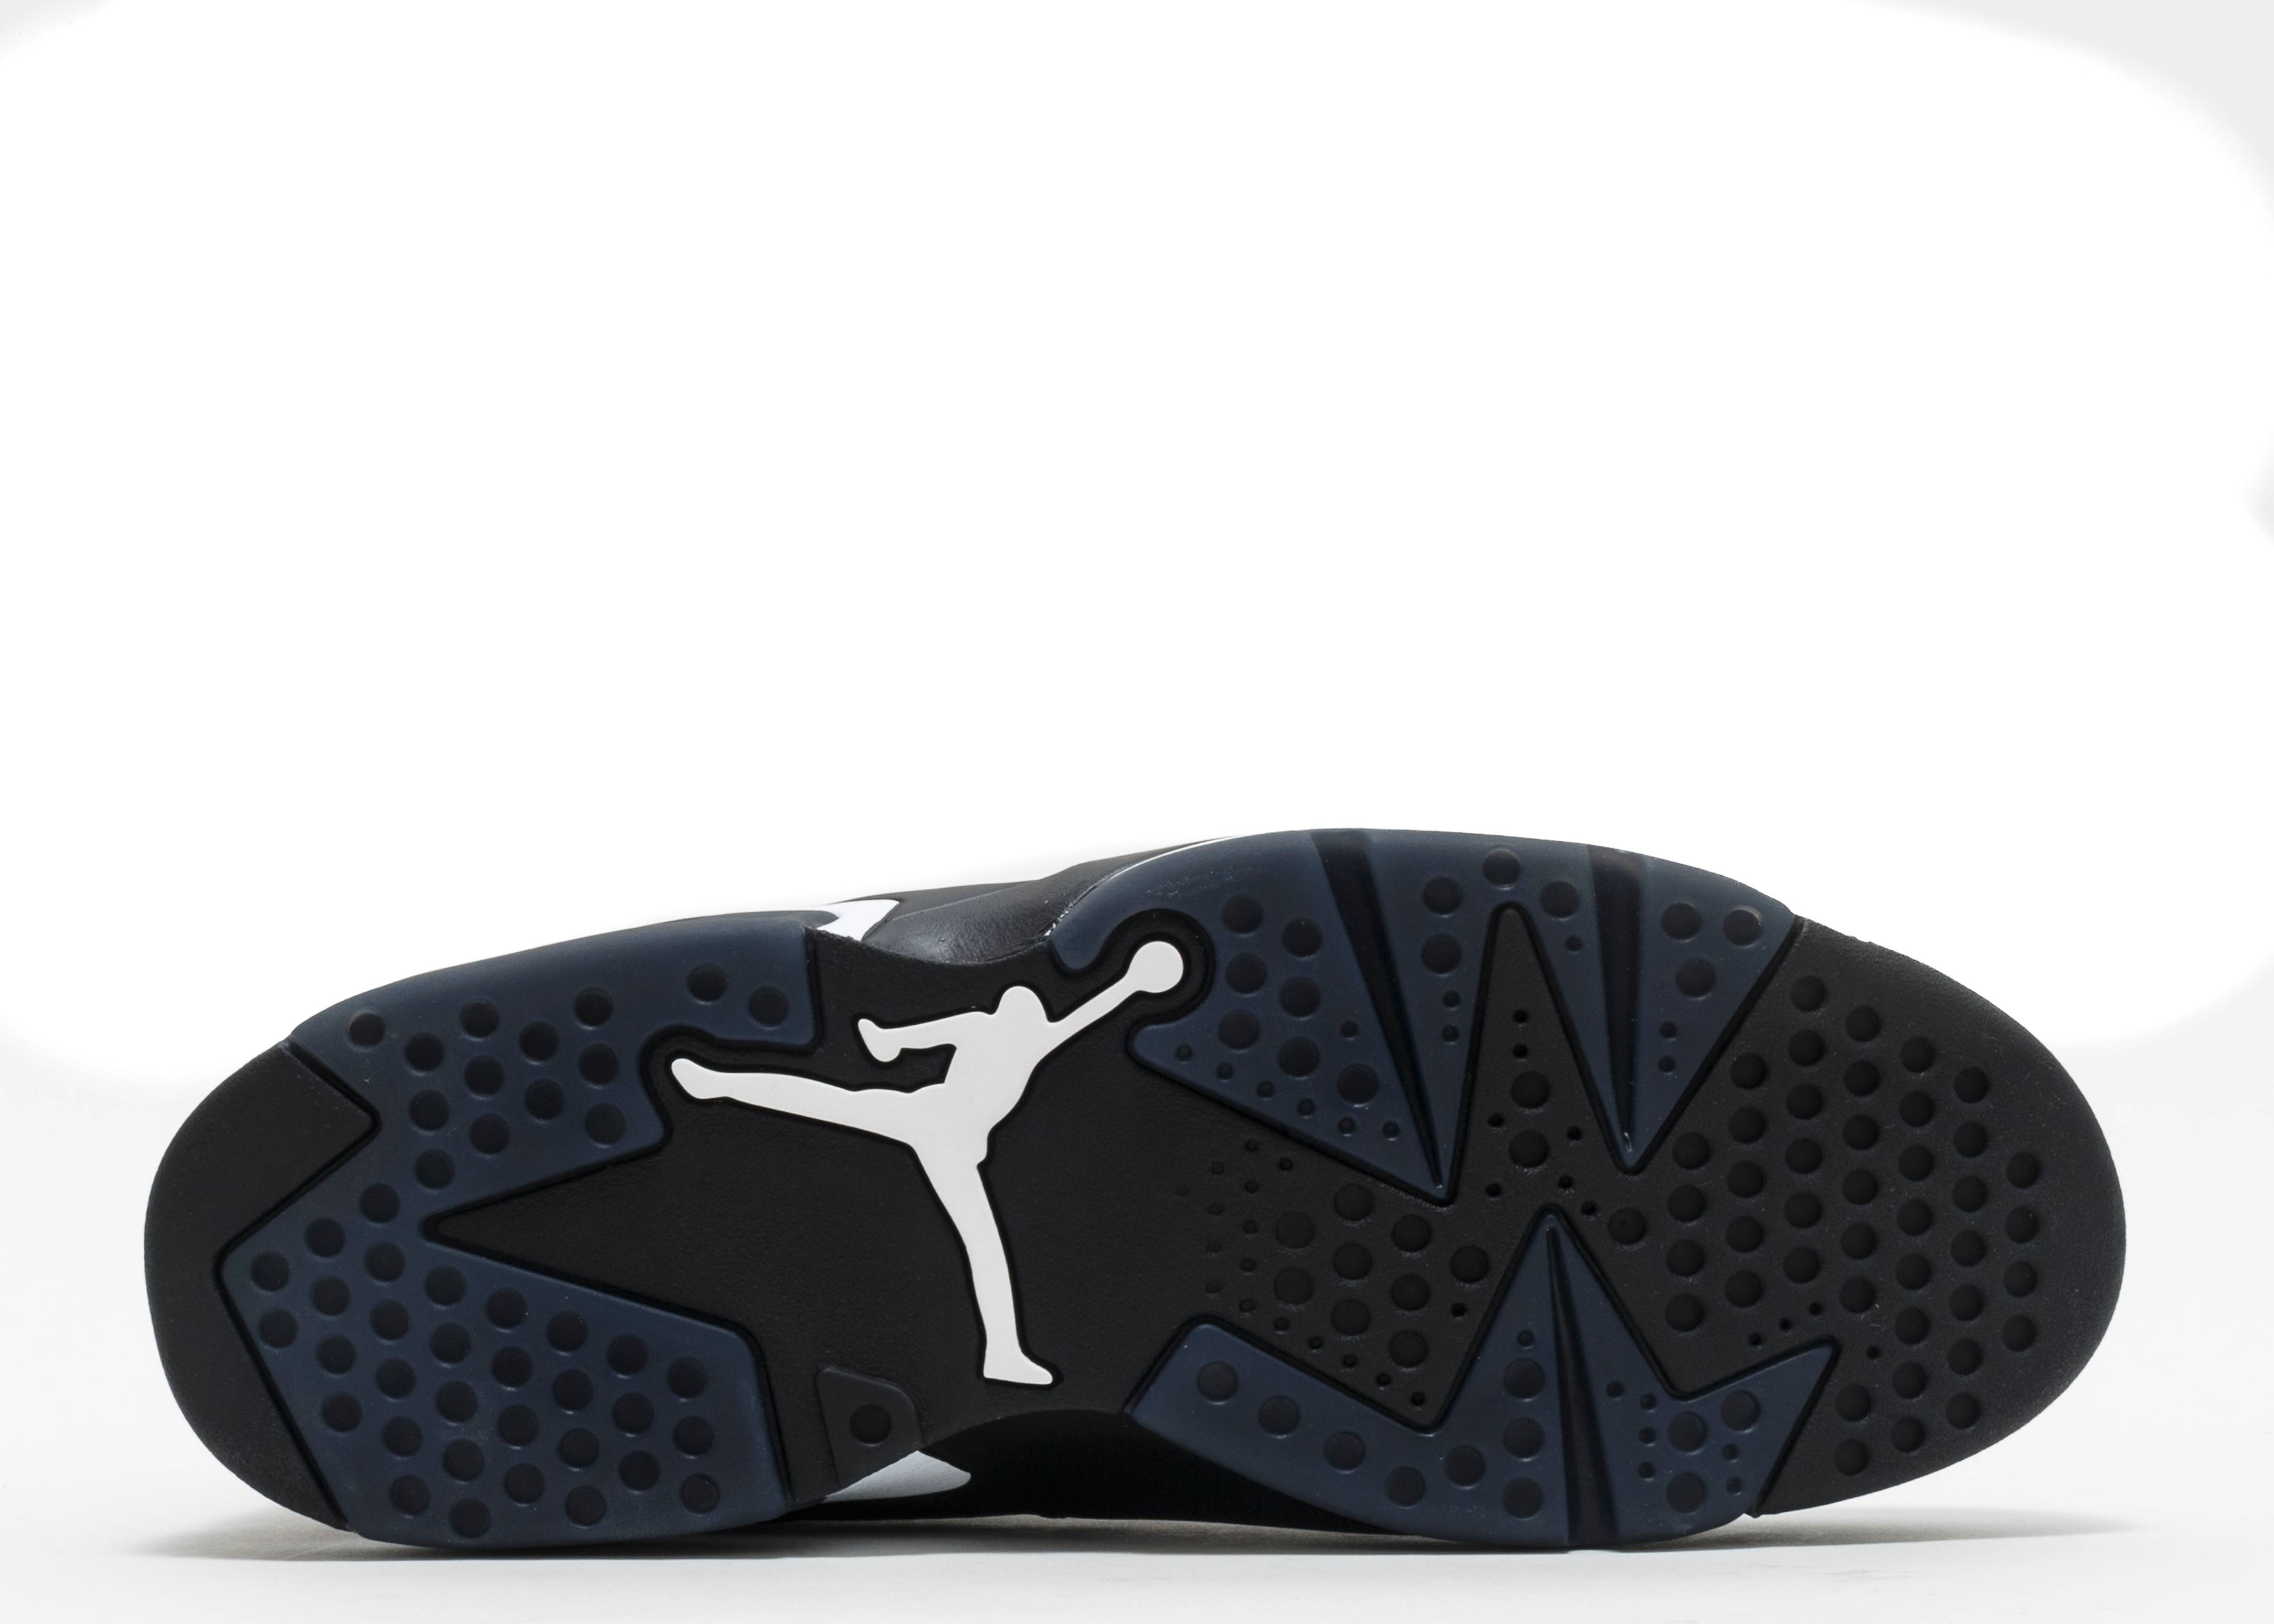 c52a69362ee091 ... low price air jordan 6 retro black cat 51ce3 167ad